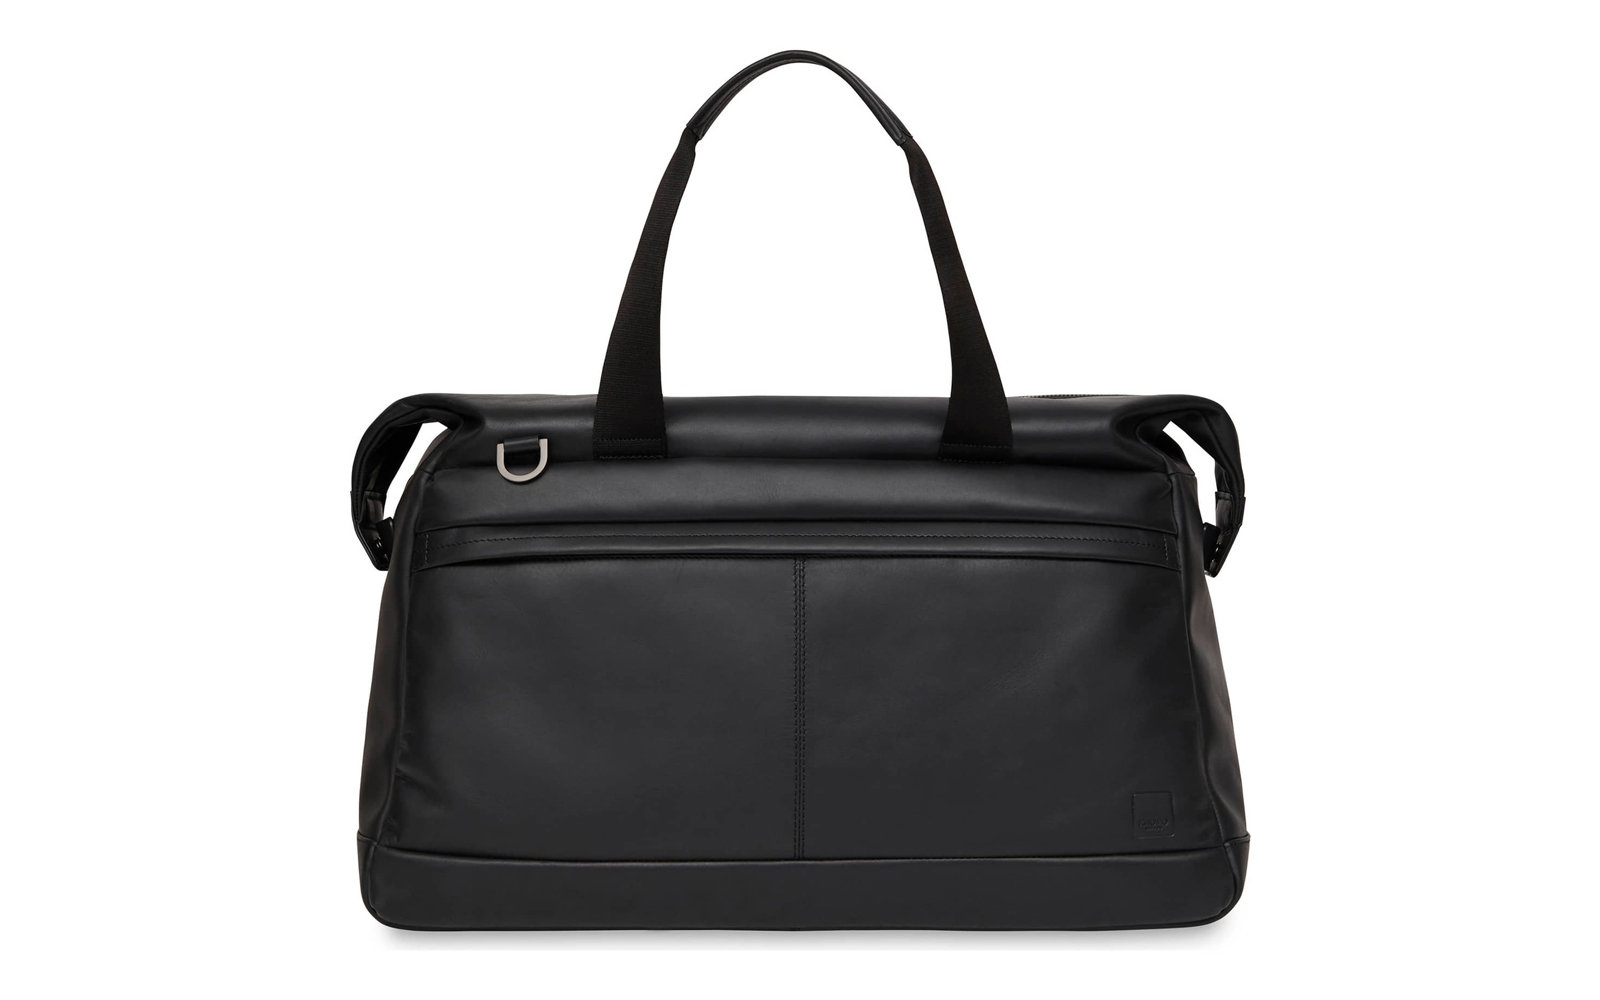 Knomo London Duffel Bag for Travel